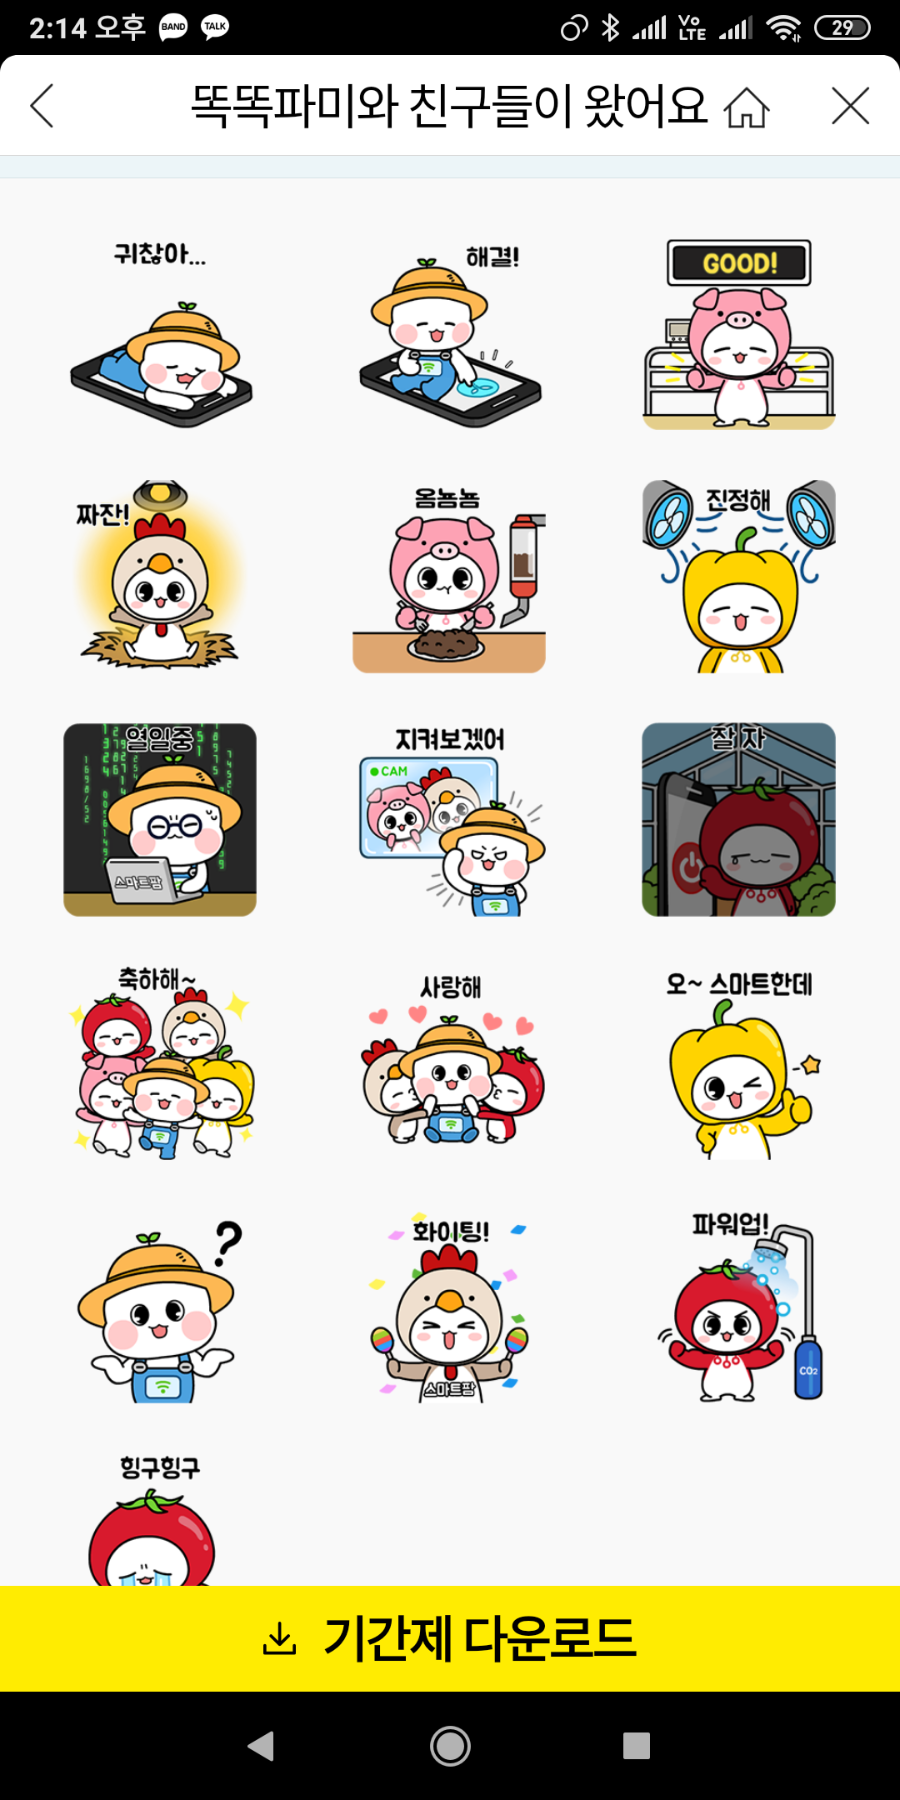 Screenshot_2019-11-08-14-14-51-245_com.kakao.talk.png